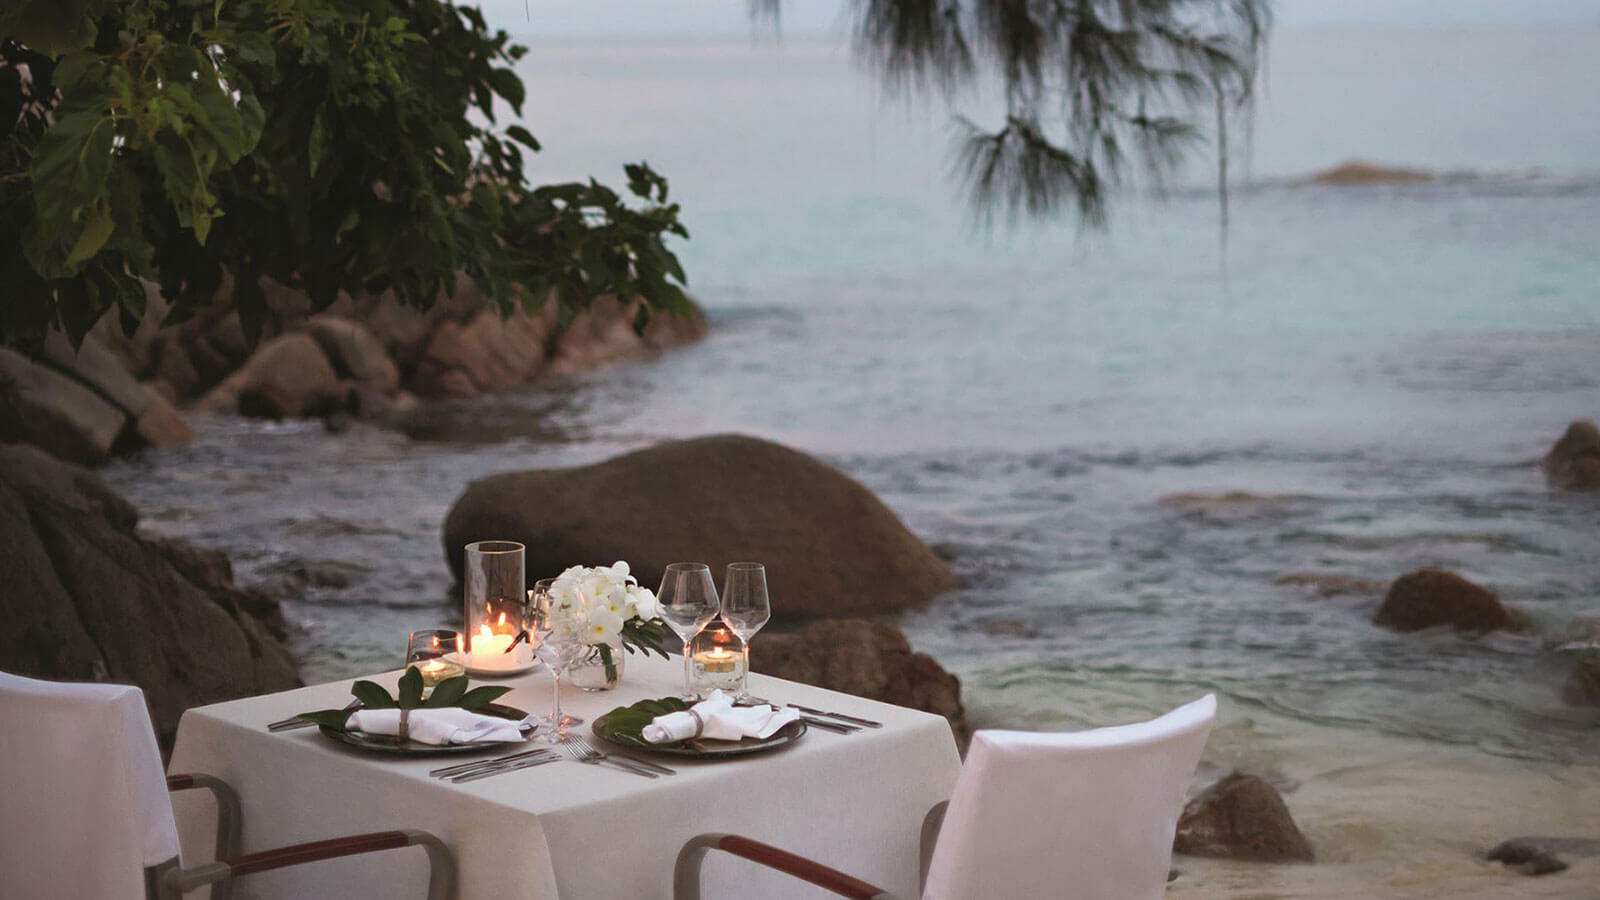 Dining experience on the beach